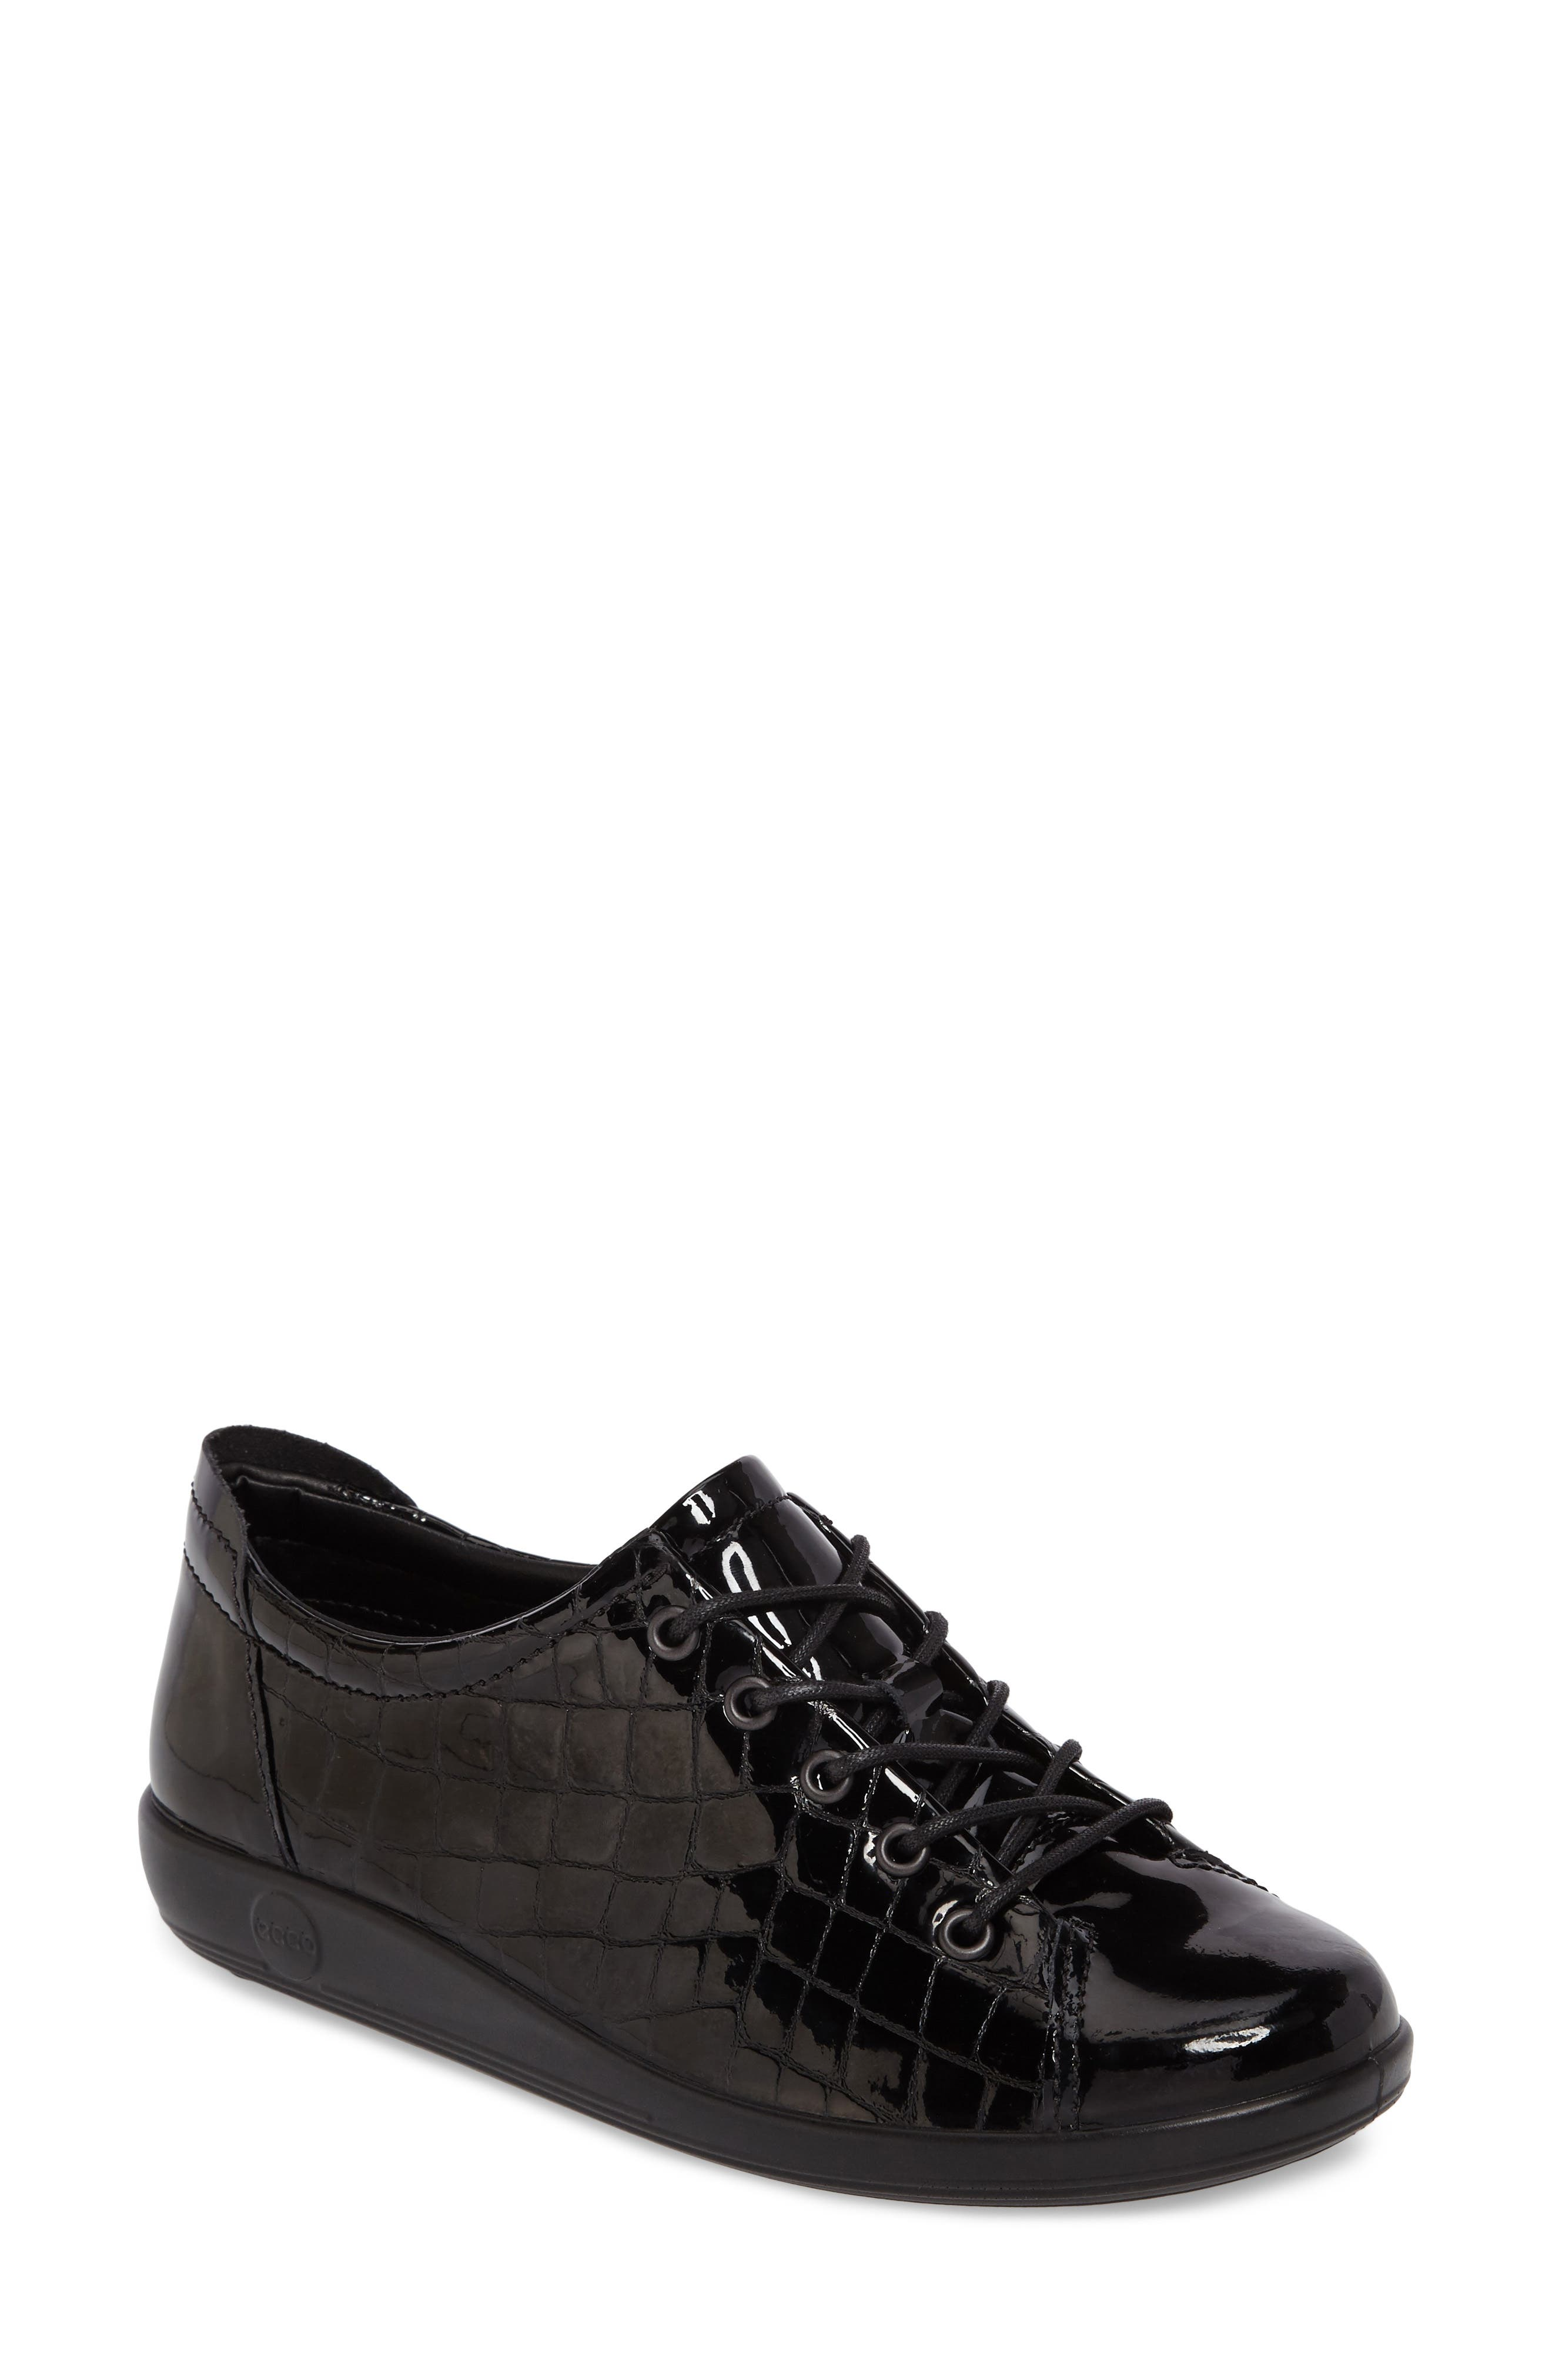 'Soft 2.0' Sneaker,                             Main thumbnail 1, color,                             Black Patent Leather